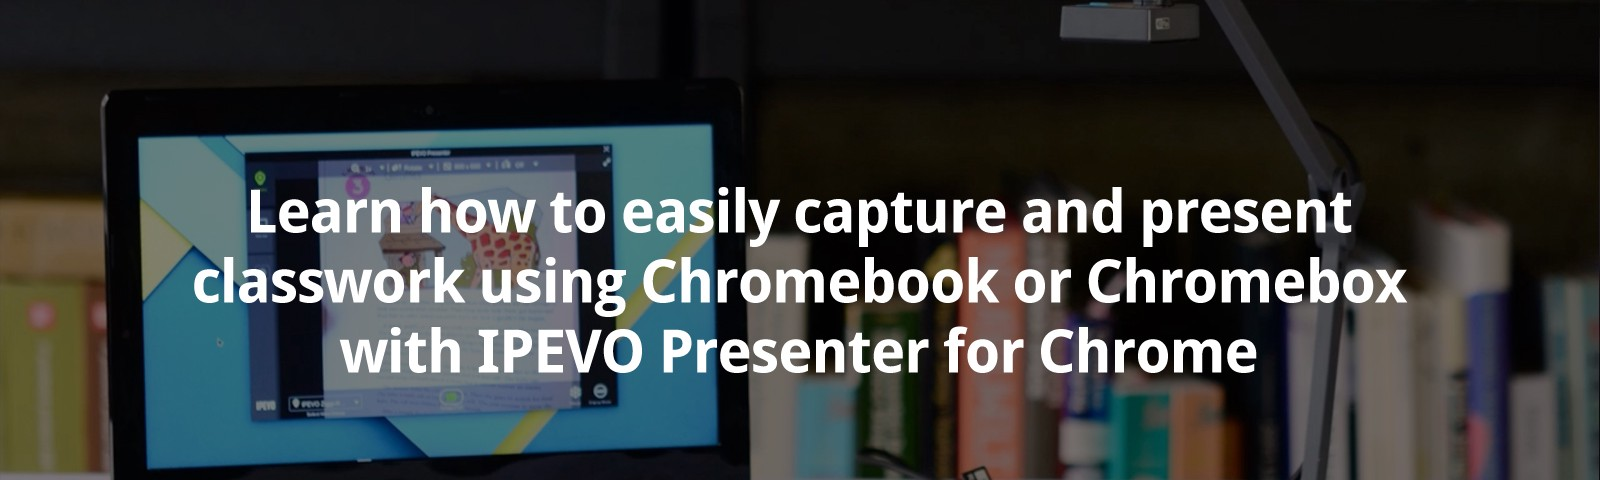 Learn how to easily capture and present classwork using Chromebook or Chromebox with IPEVO Presenter for Chrome